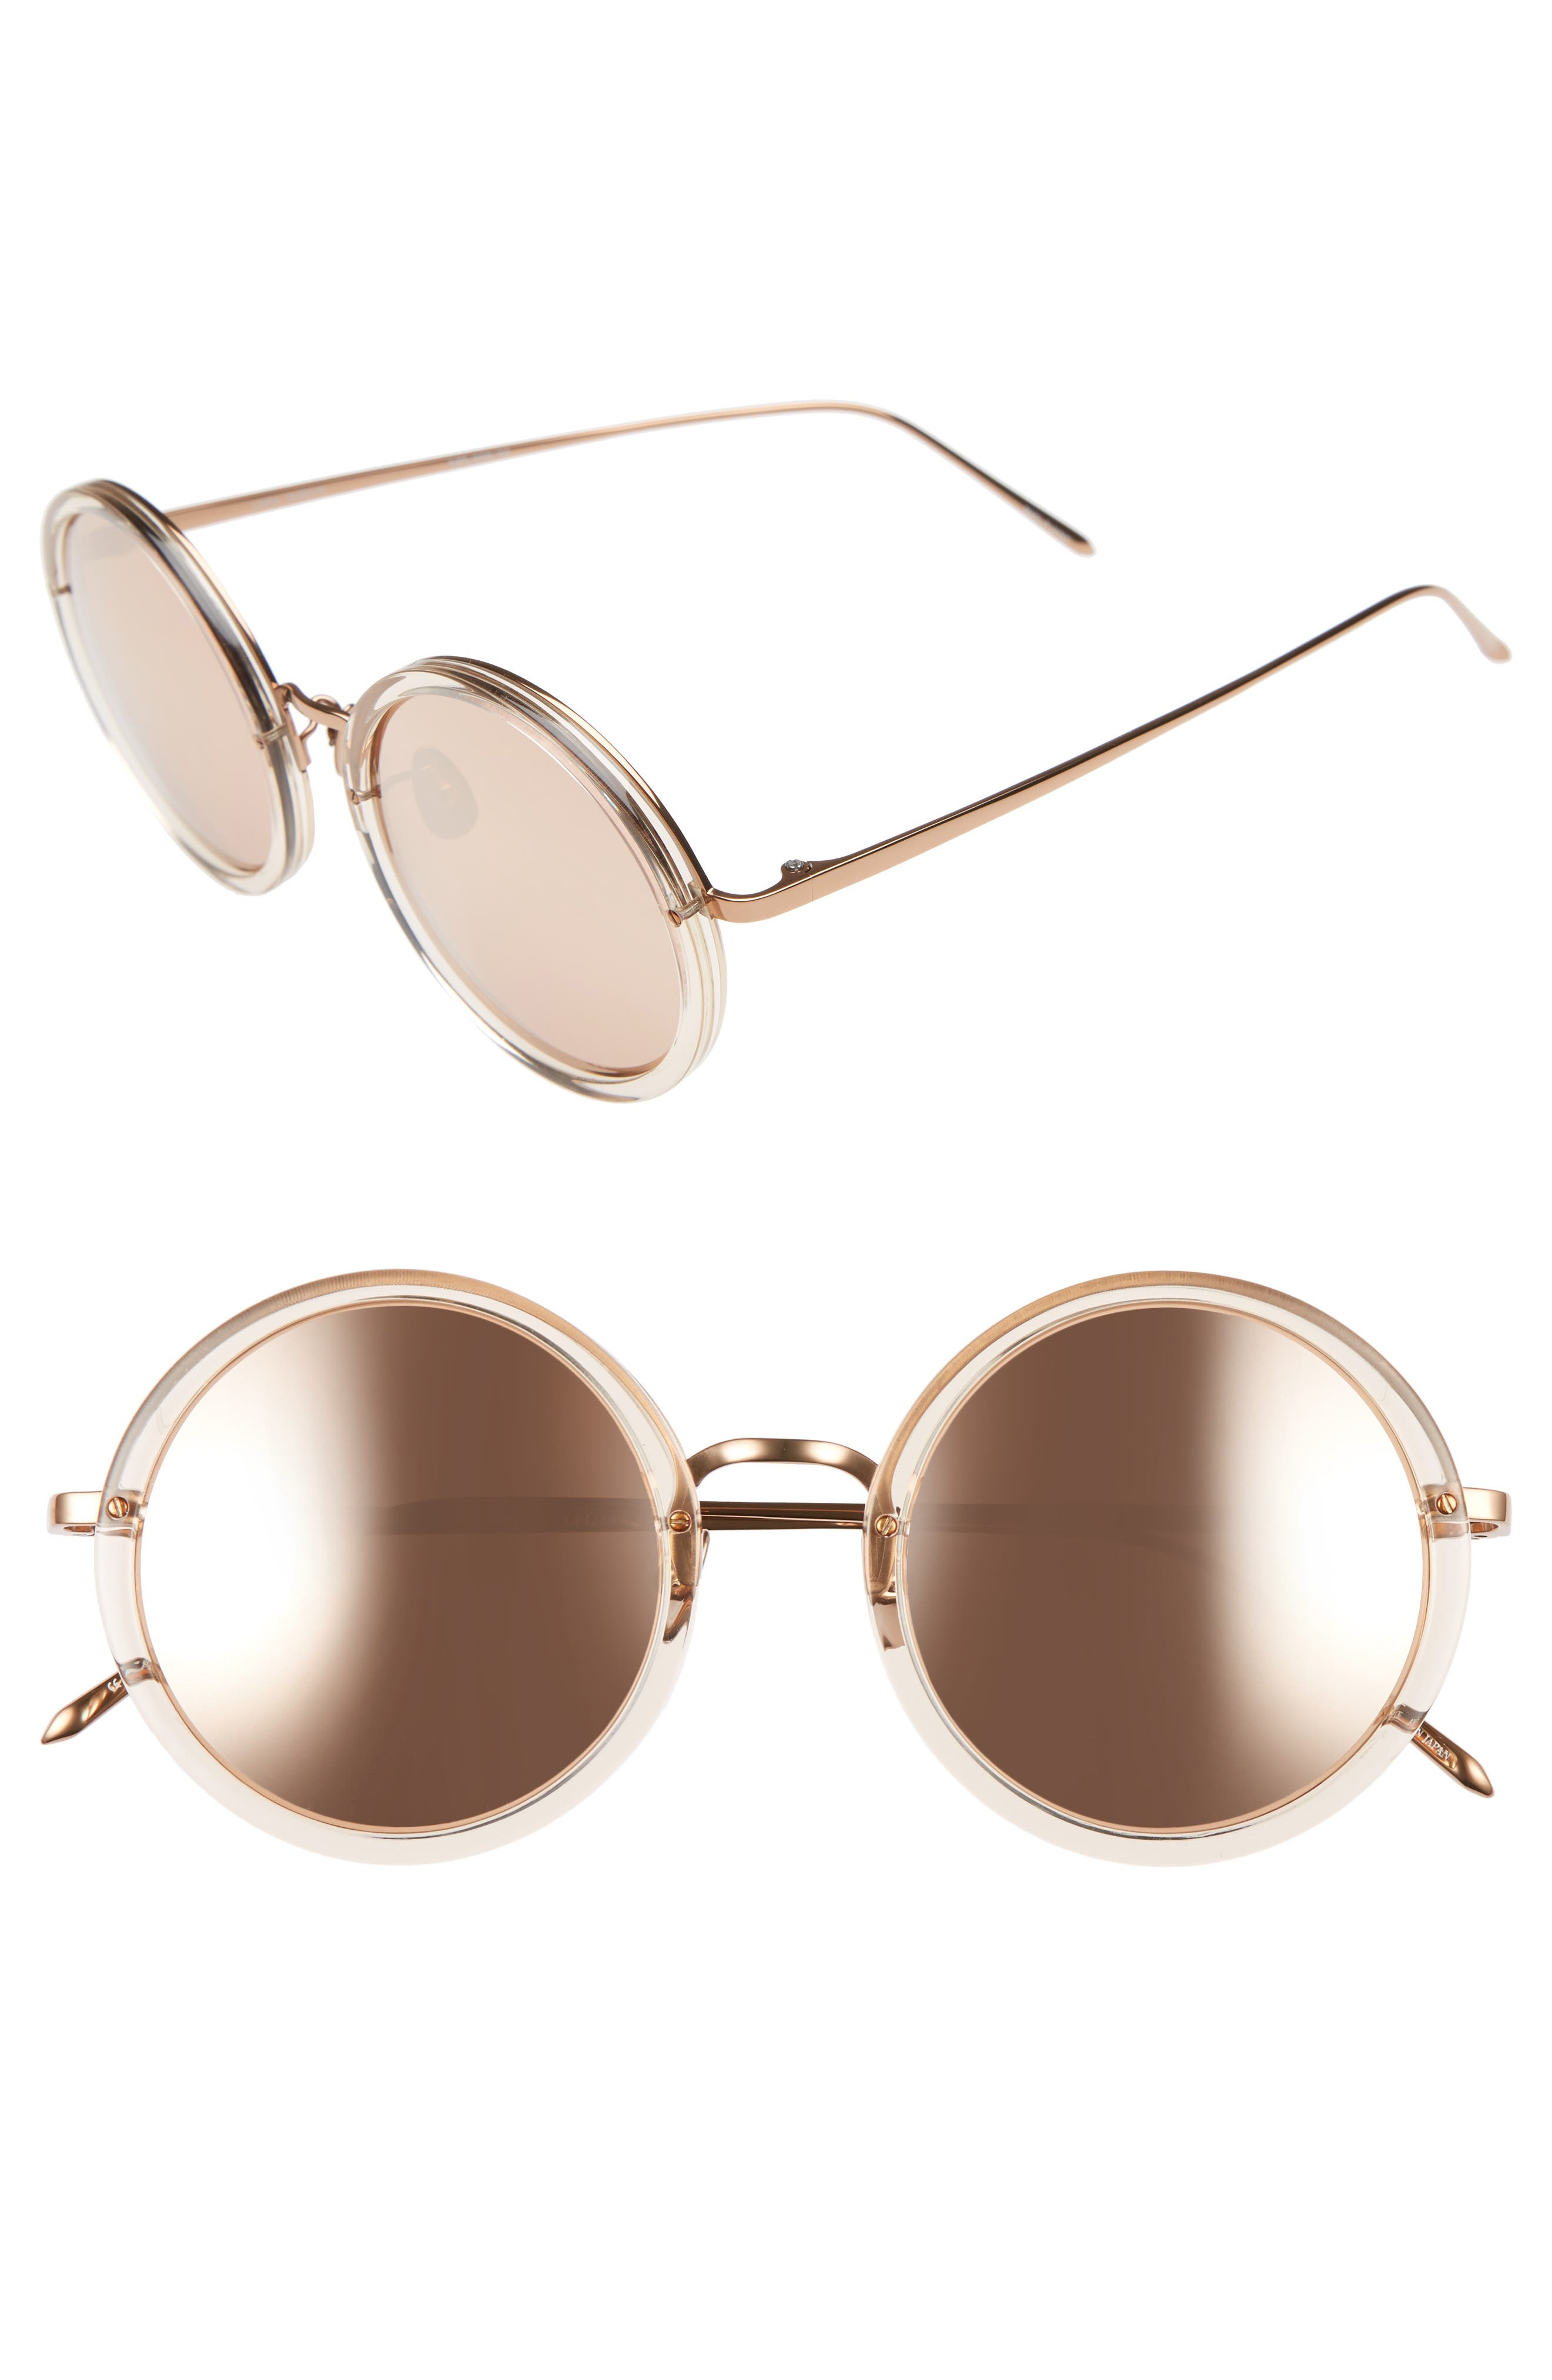 51mm Round Sunglasses,                             Main thumbnail 1, color,                             Ash/ Rose Gold